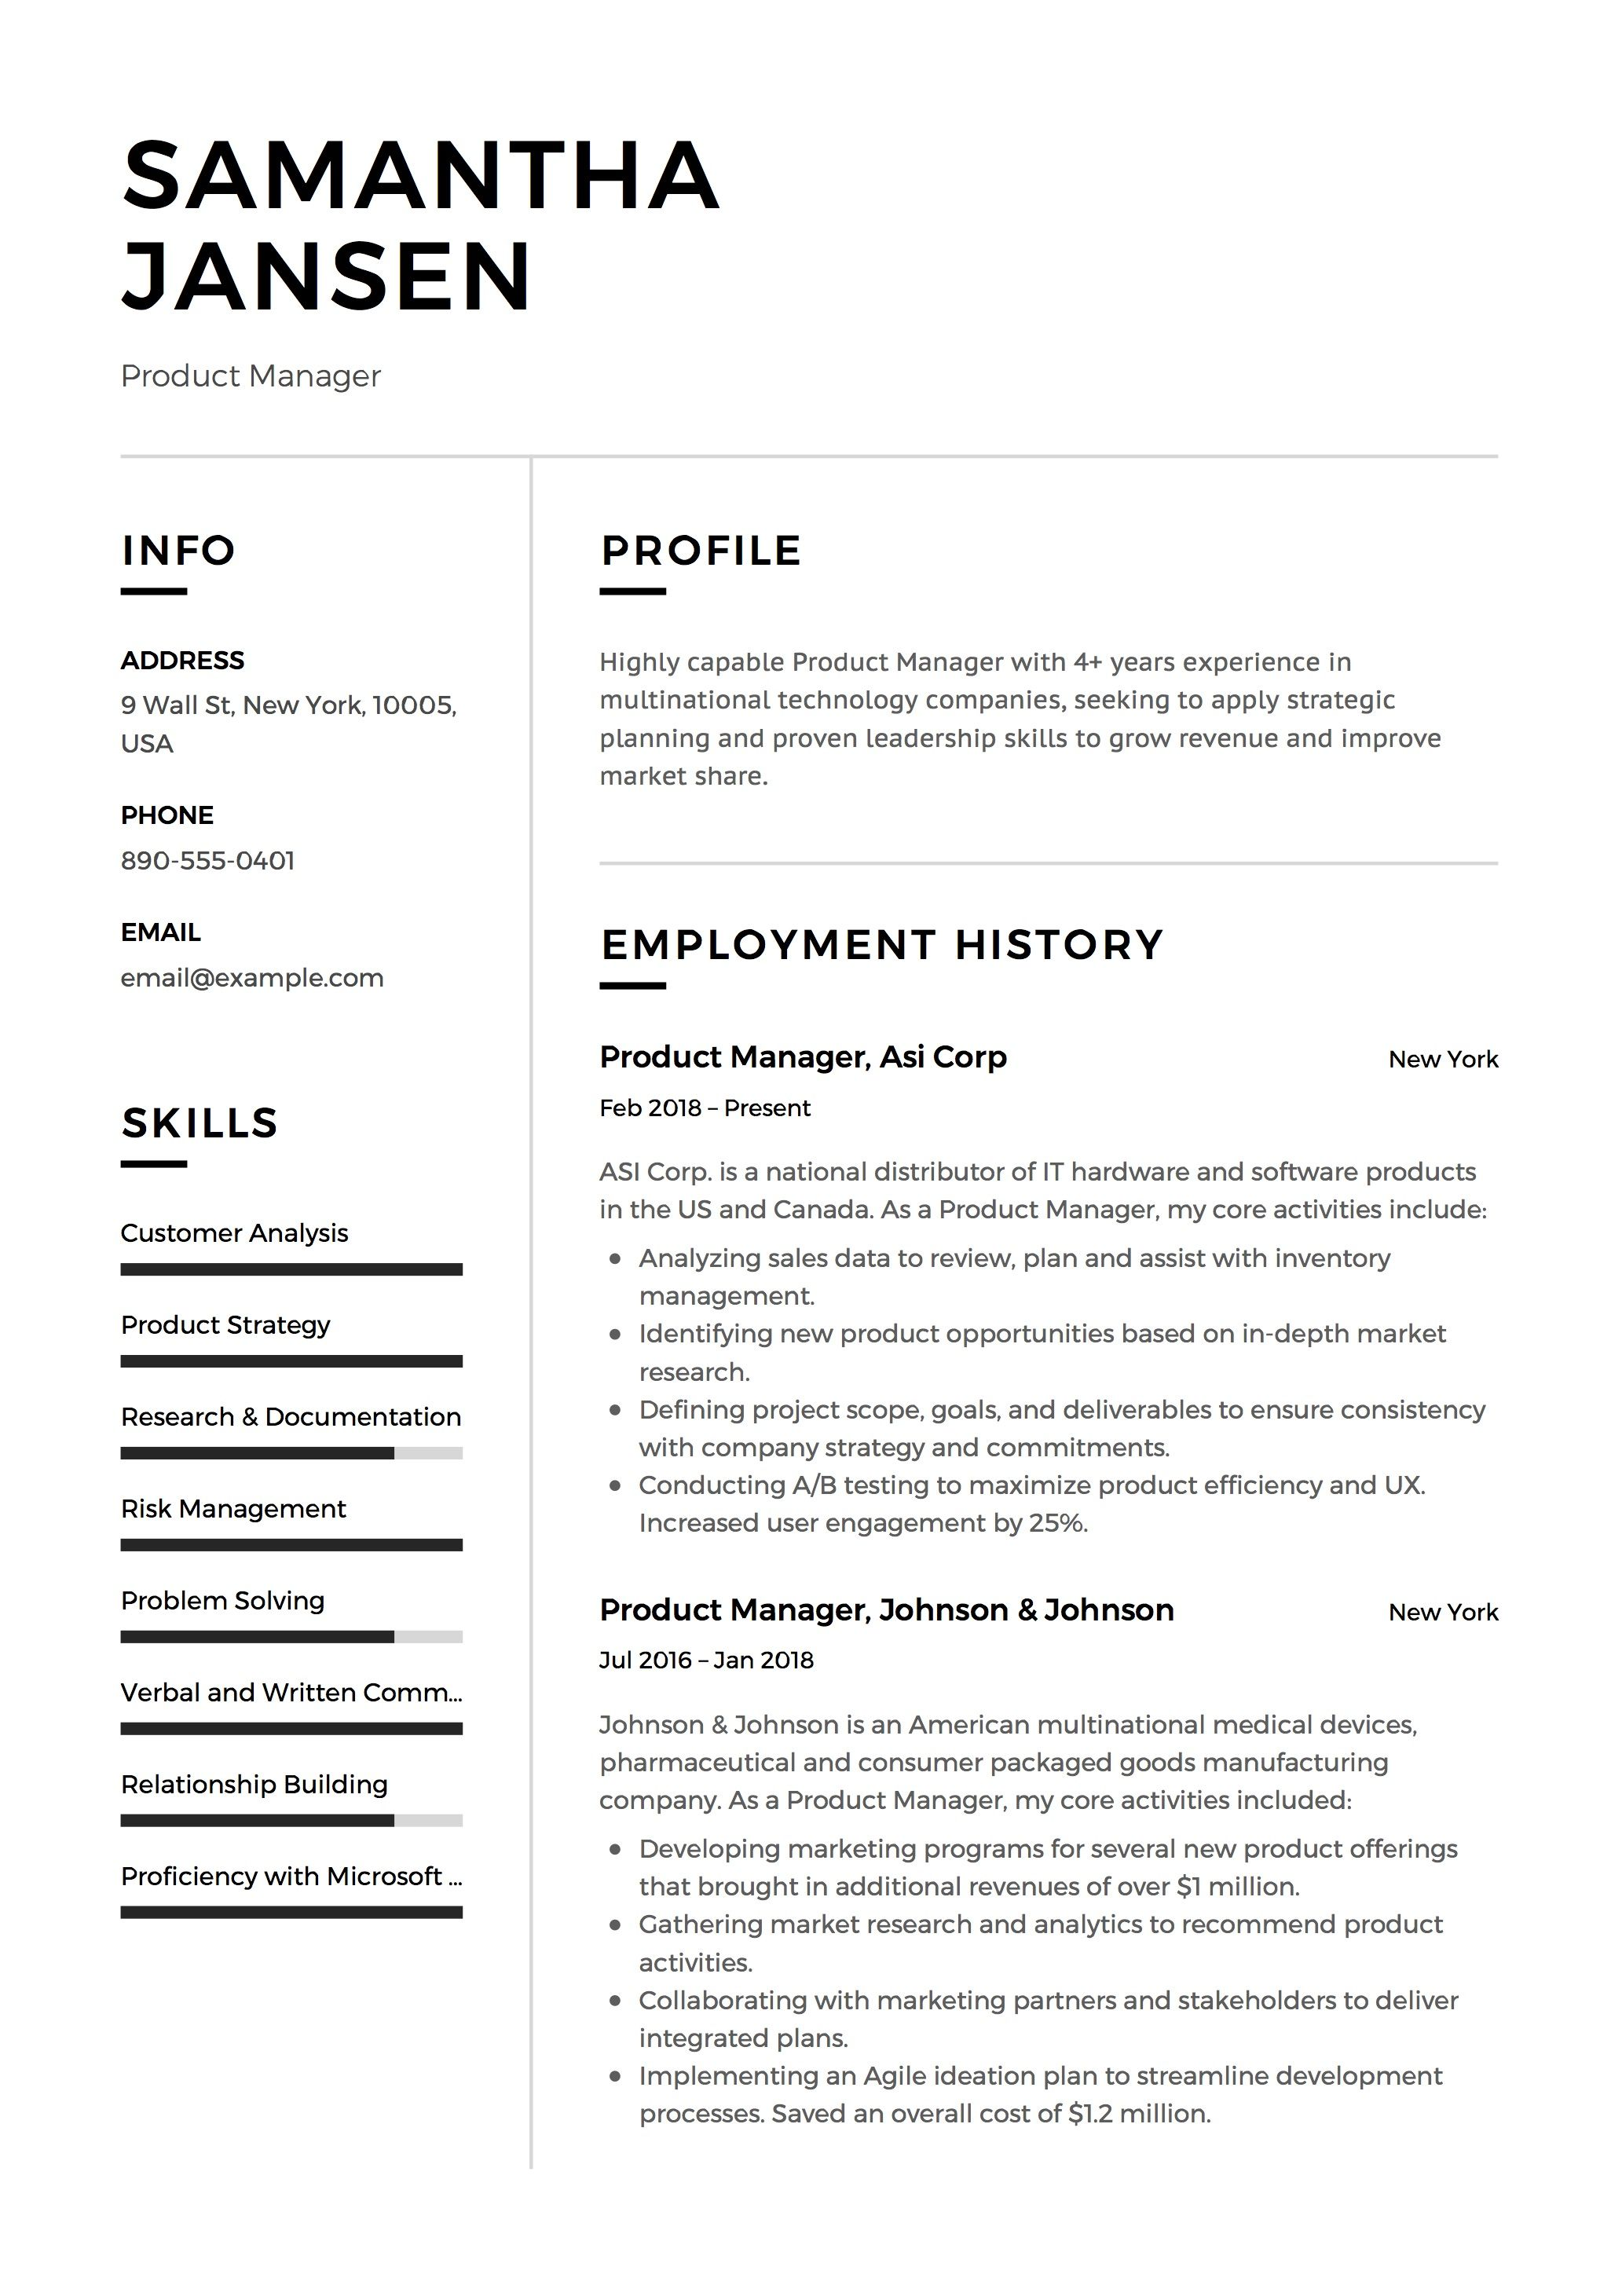 Product Manager Resume Sample, Template, Example, CV